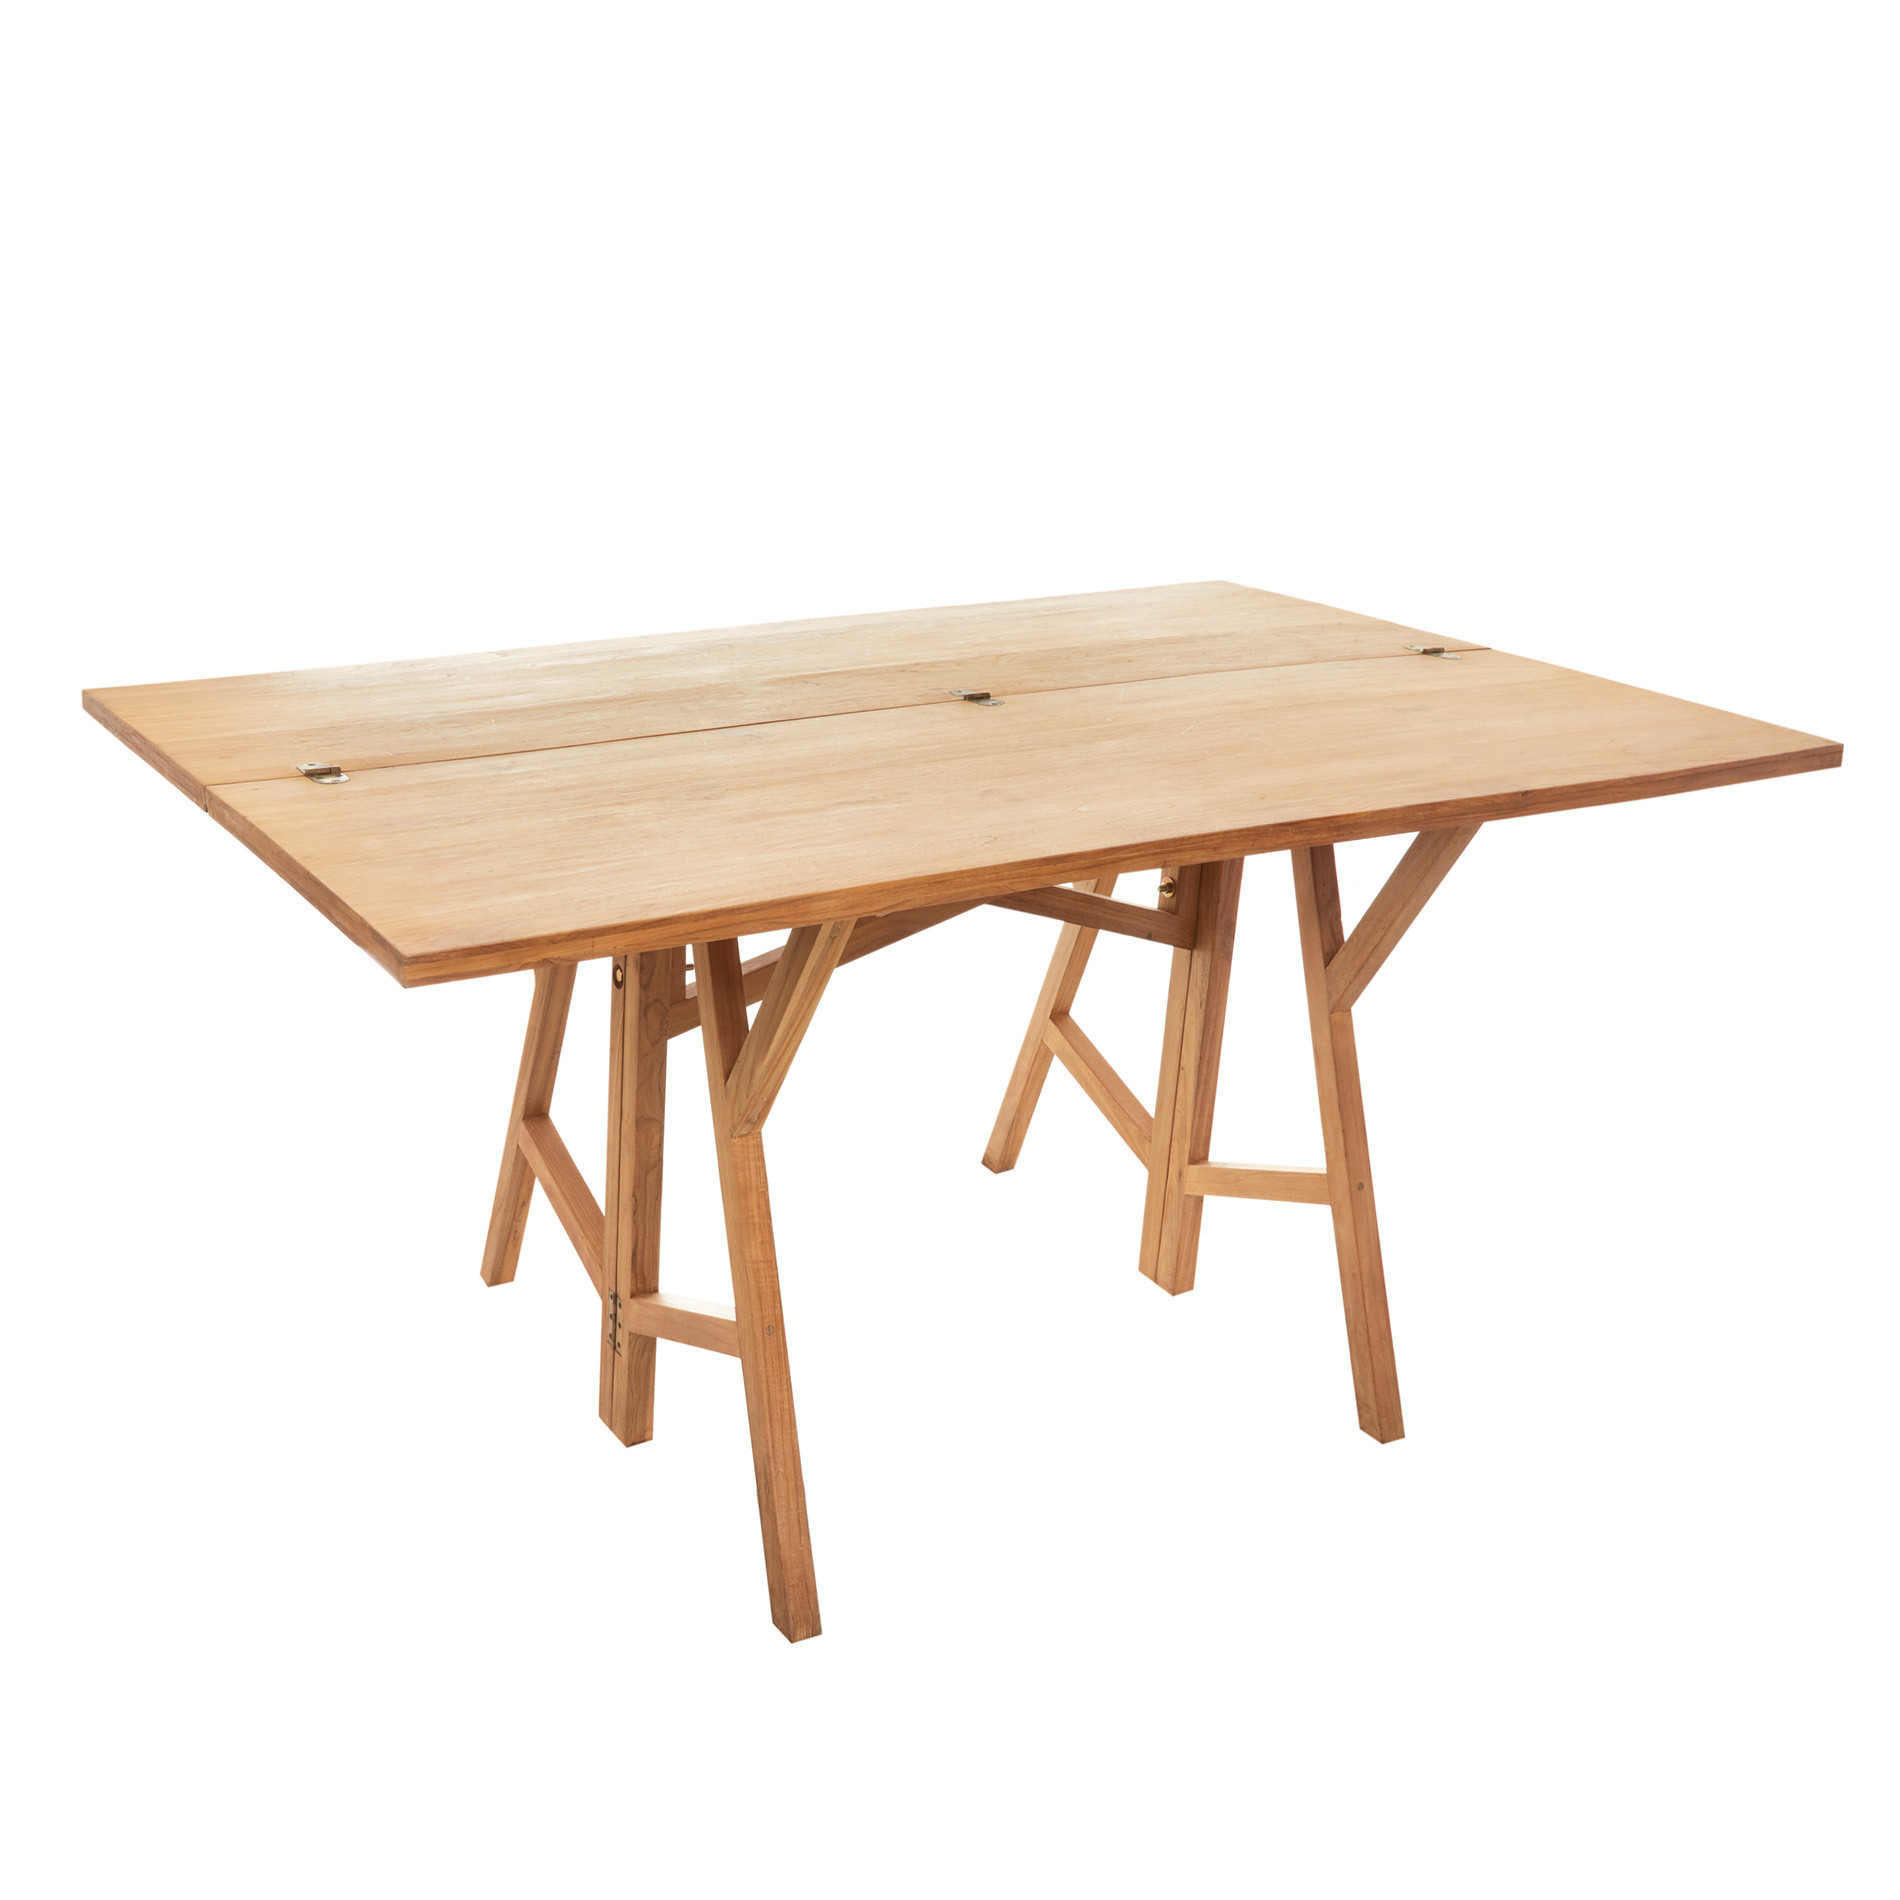 Tavolo consolle in teak riciclato T-Table, Beige, large image number 1